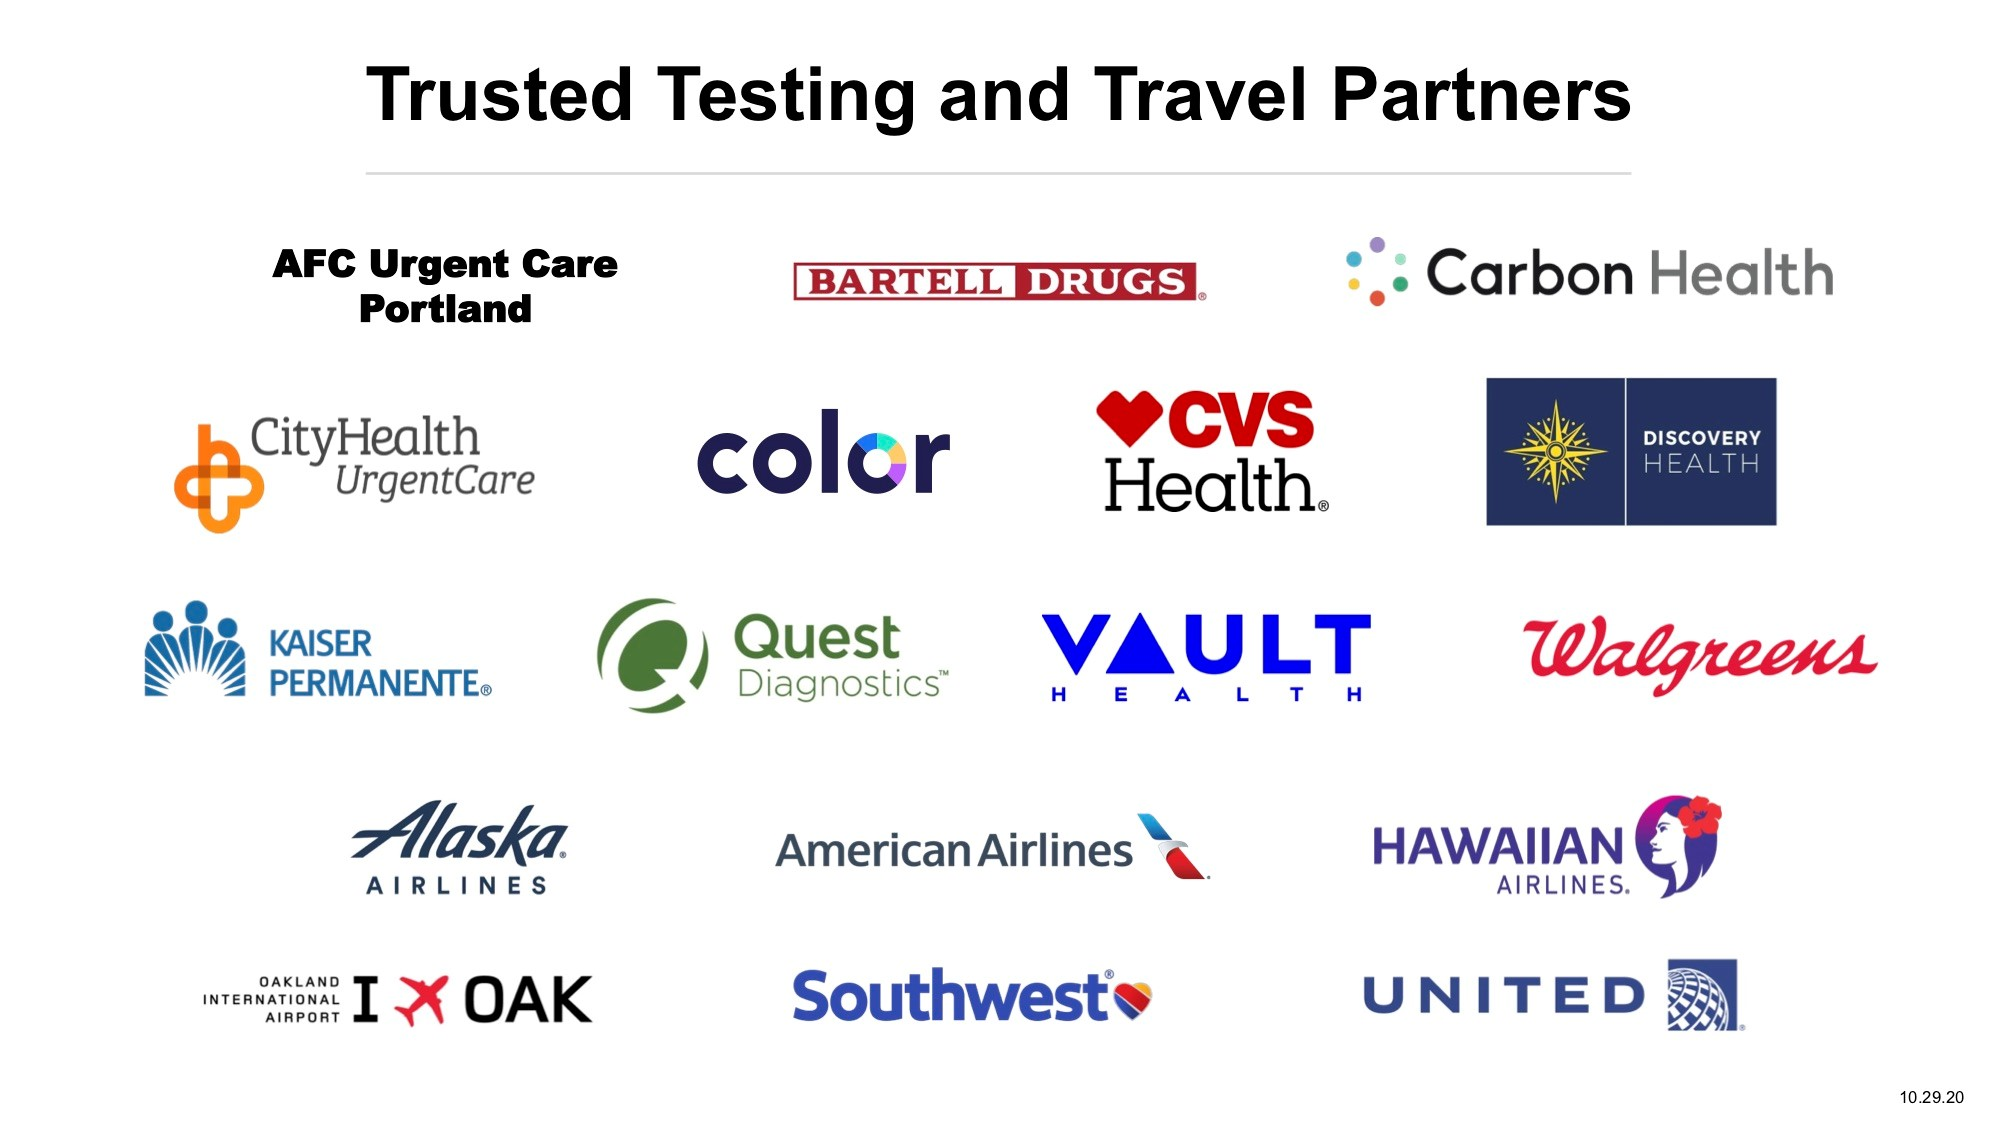 Trusted Testing and Travel Partners - Nov 4 2020